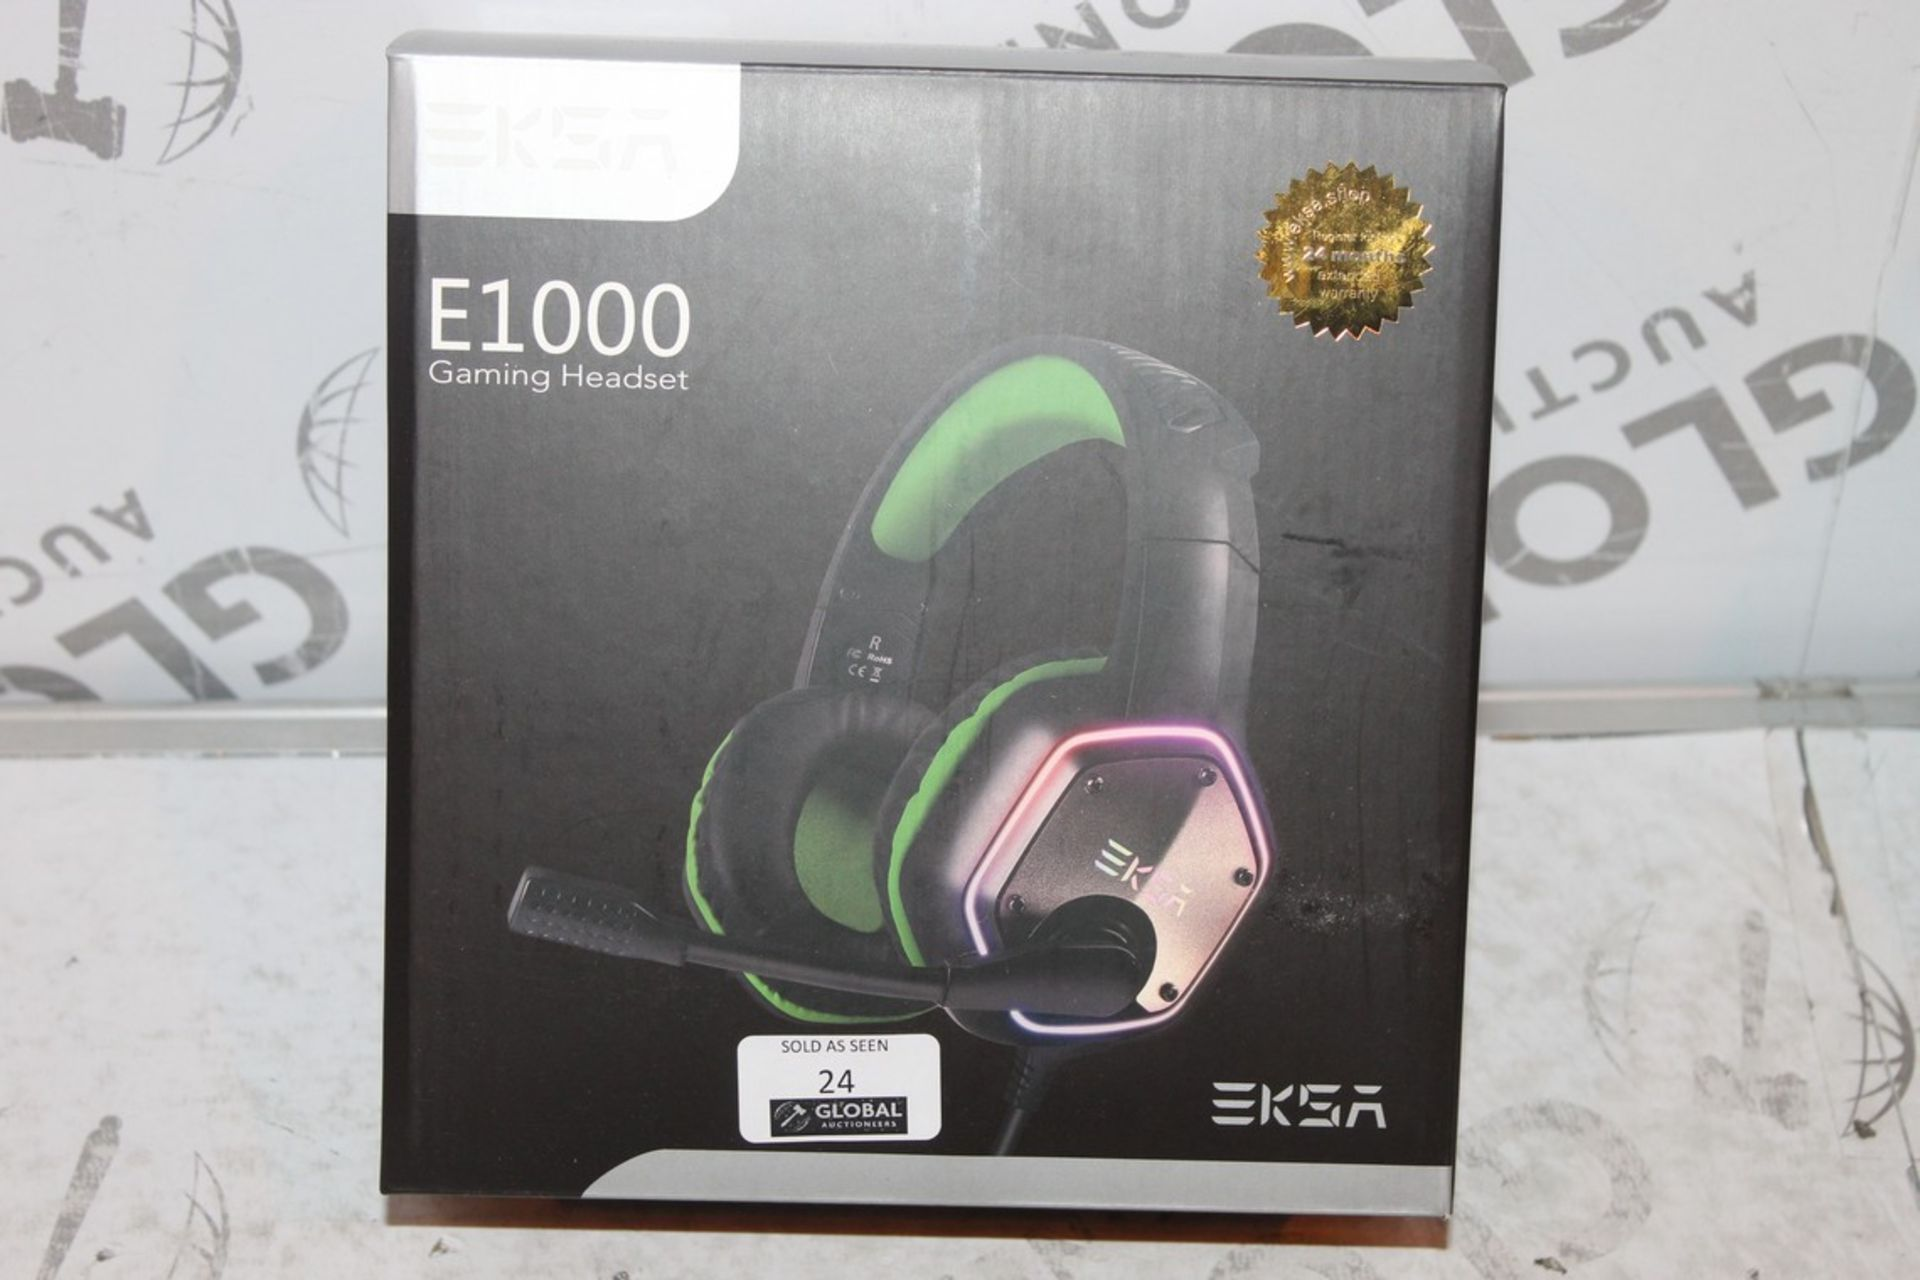 Lot 24 - Boxed Pair of EKSA E1000, Gaming Headphones with Microphone, RRP£45.00